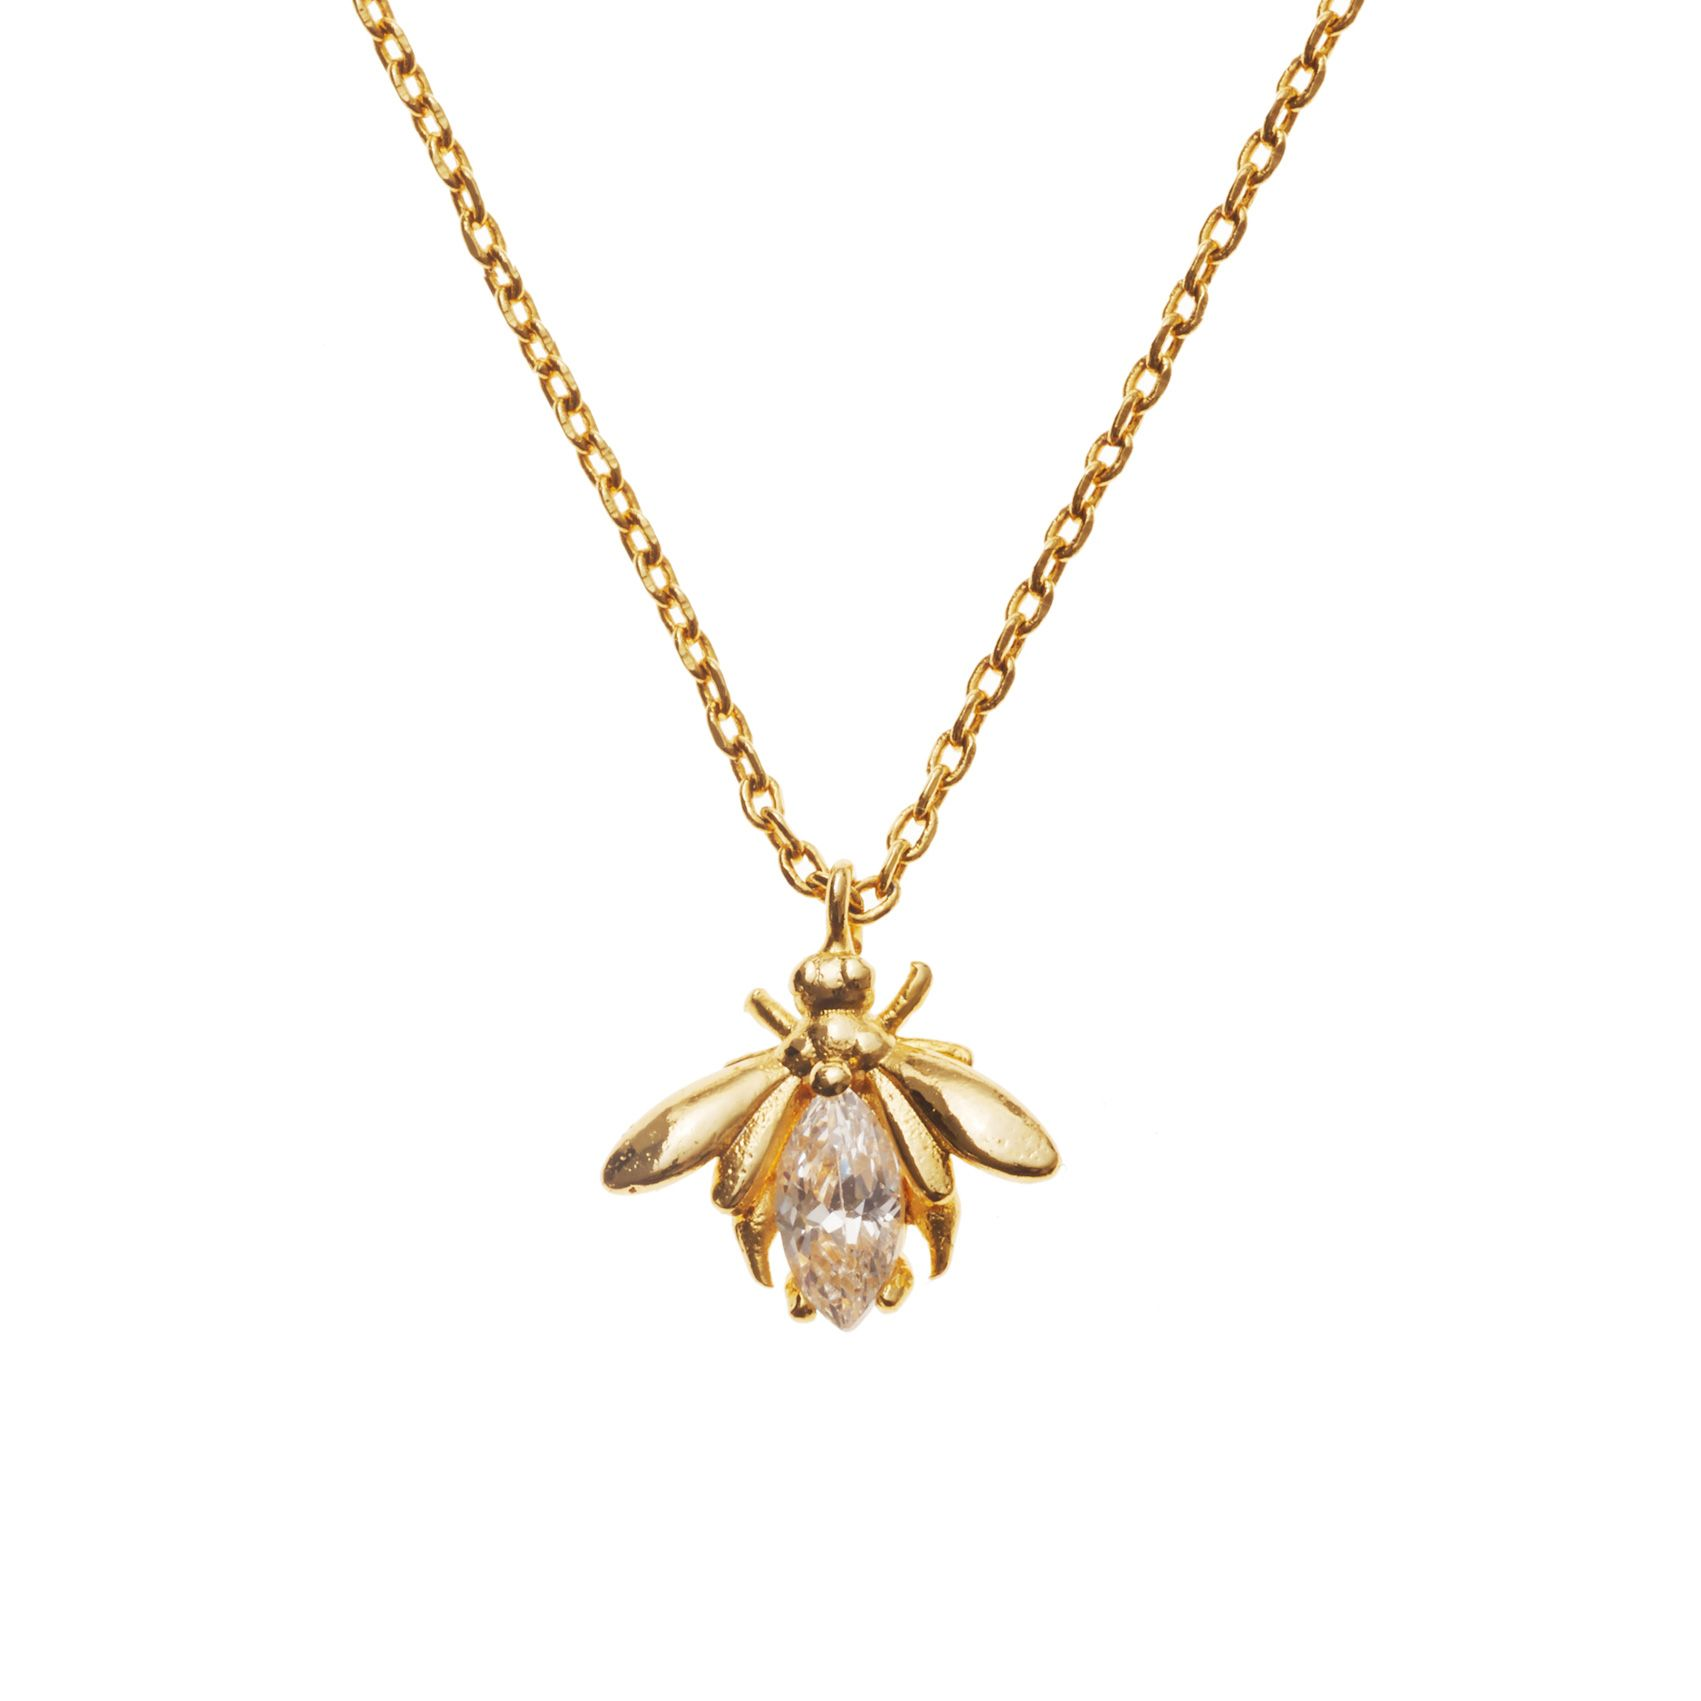 Buy The Gold Vintage Bumble Bee Necklace At Oliver Bonas Enjoy Free Worldwide Standard Delivery For Orders Over GBP50